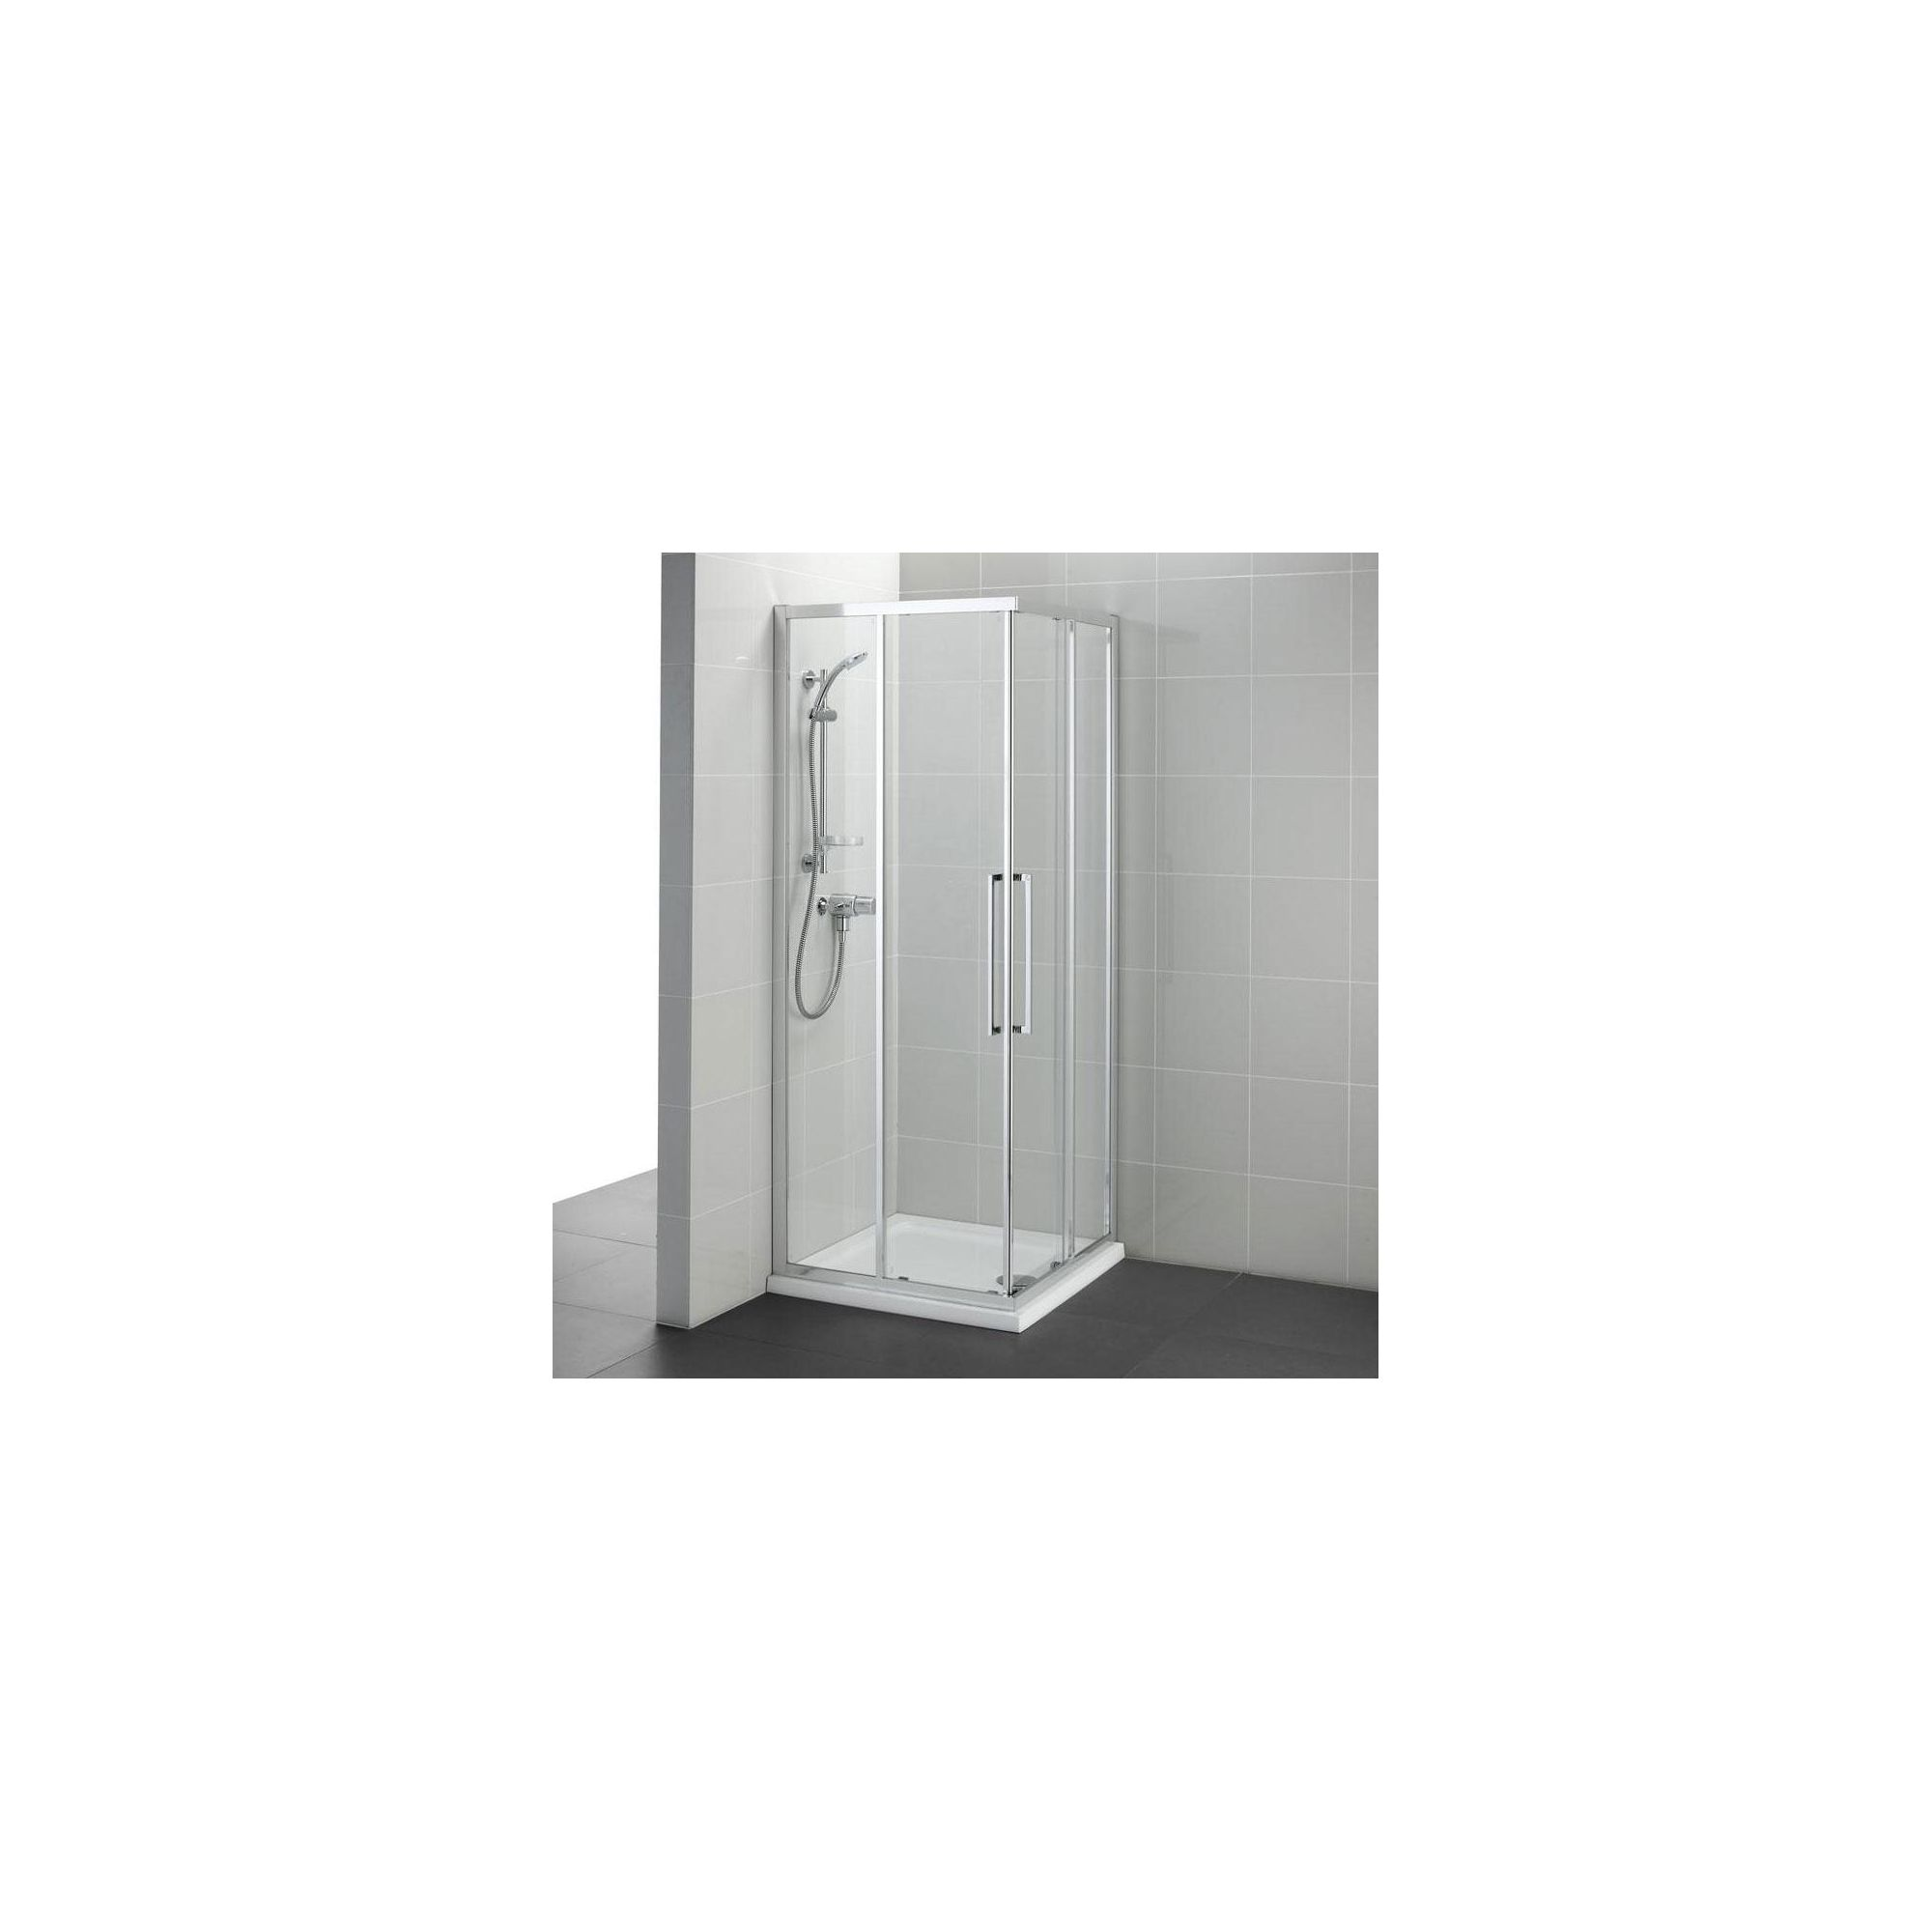 Ideal Standard Kubo Corner Entry Shower Enclosure, 760mm x 760mm, Bright Silver Frame, Low Profile Tray at Tesco Direct